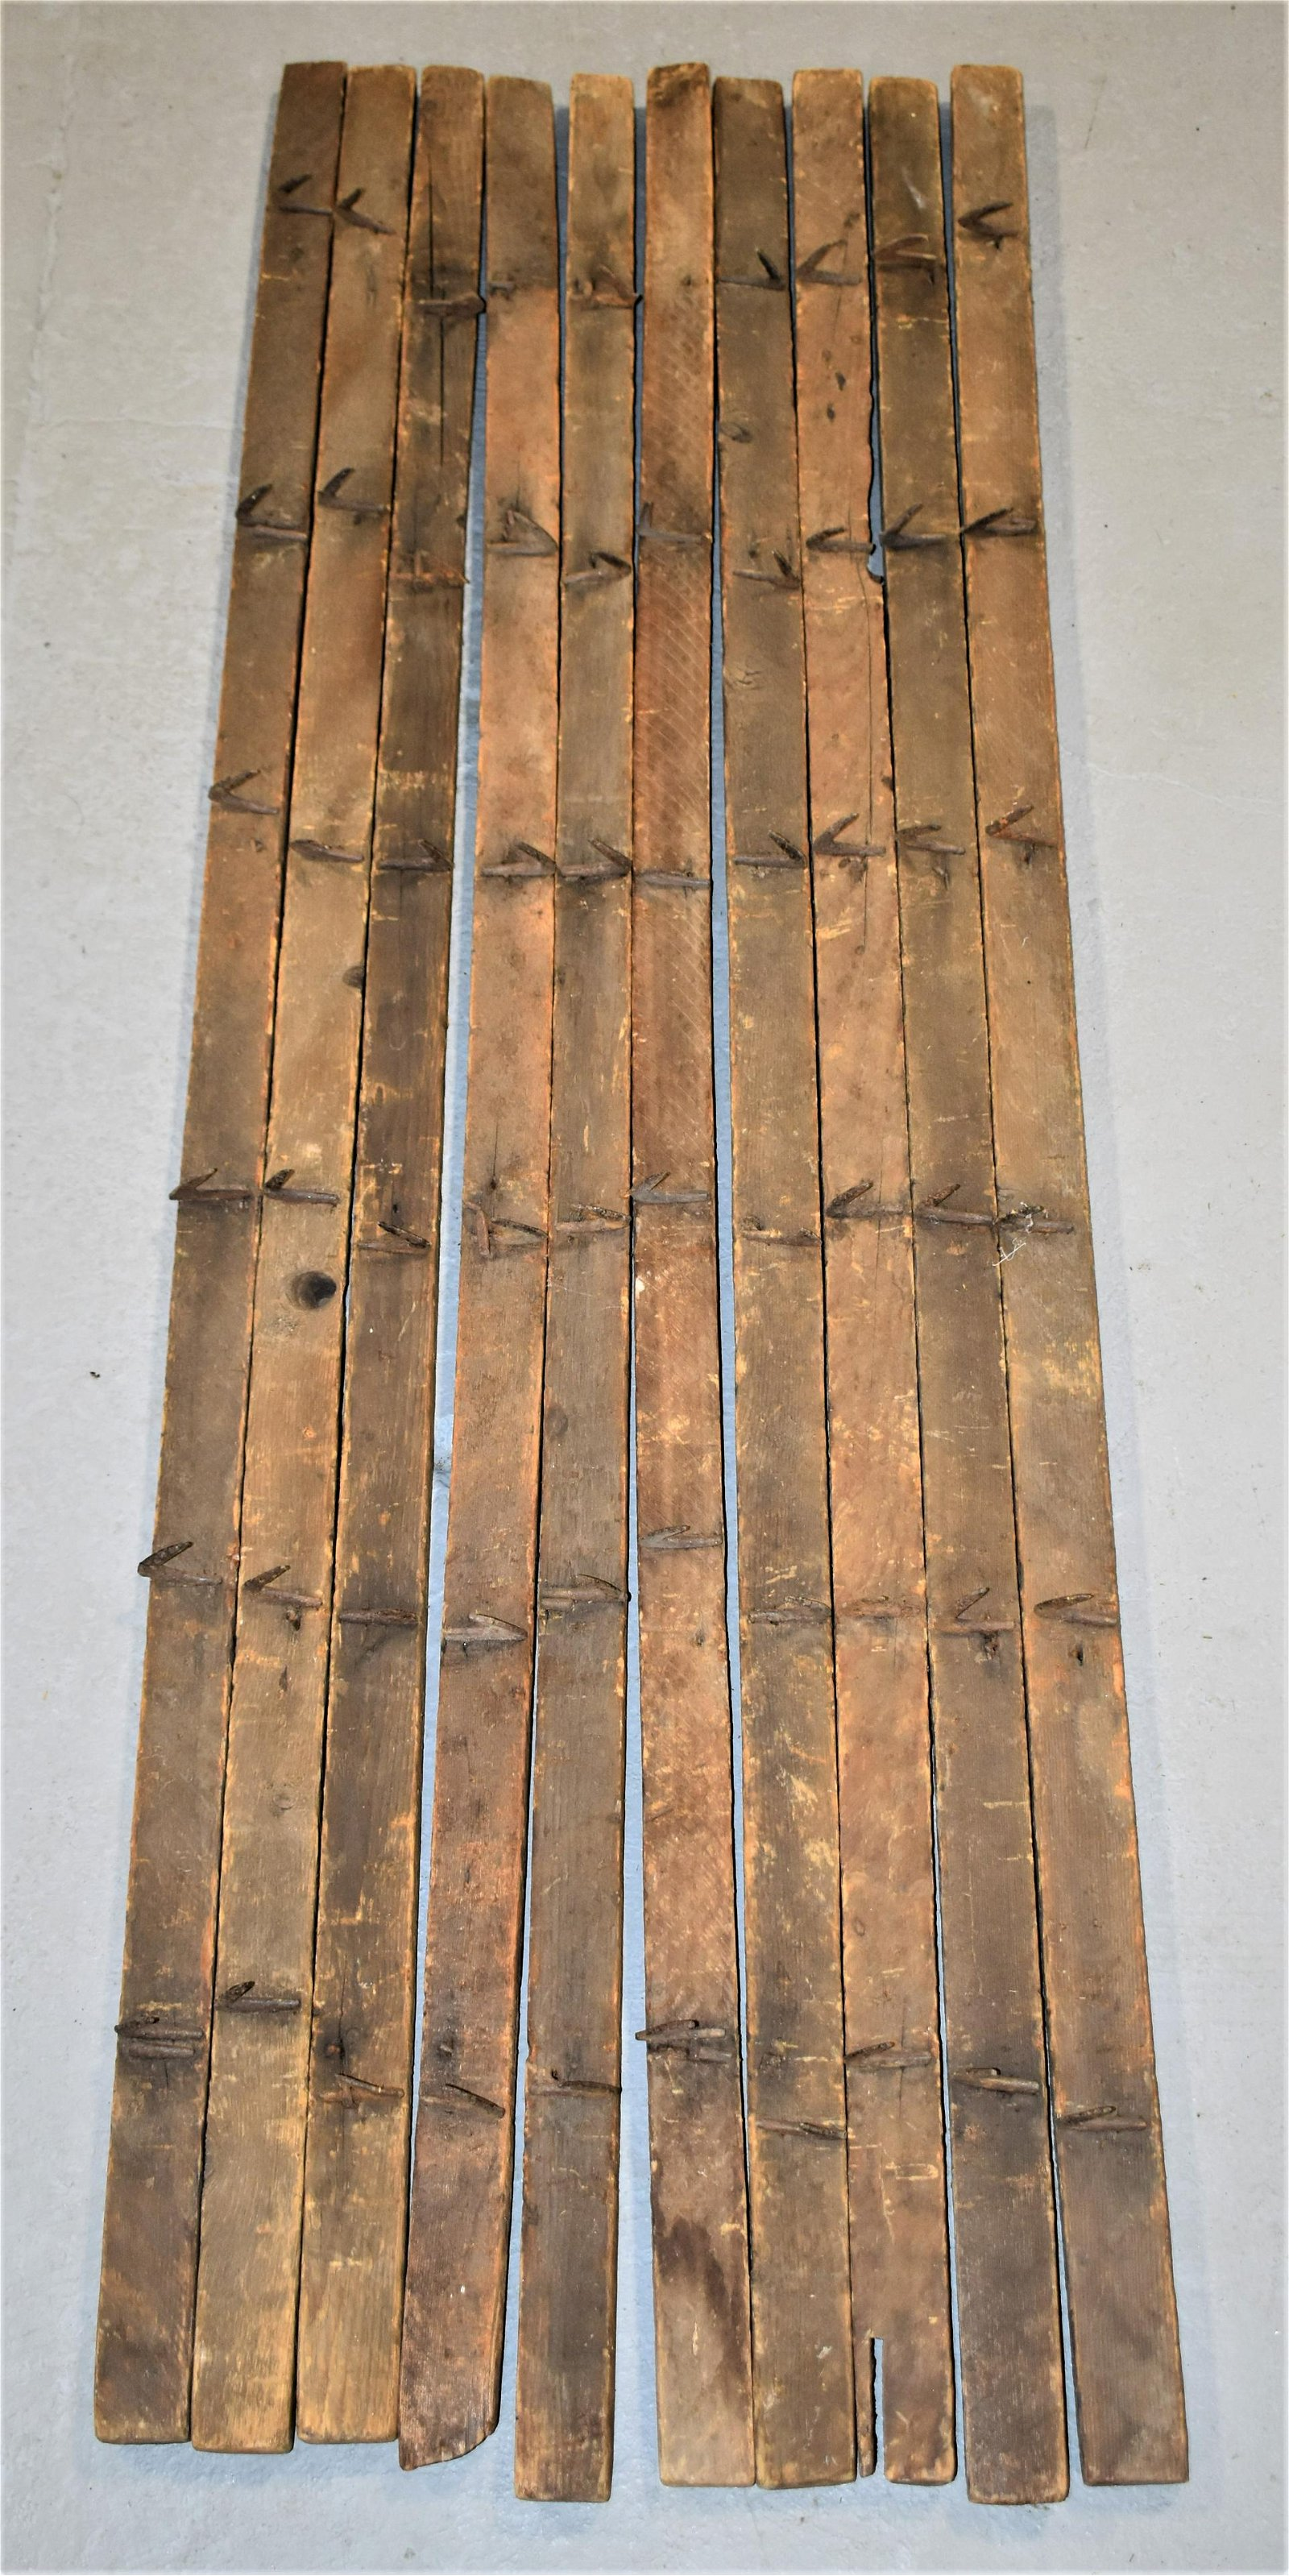 10 Wooden Drying Racks with Iron Hooks